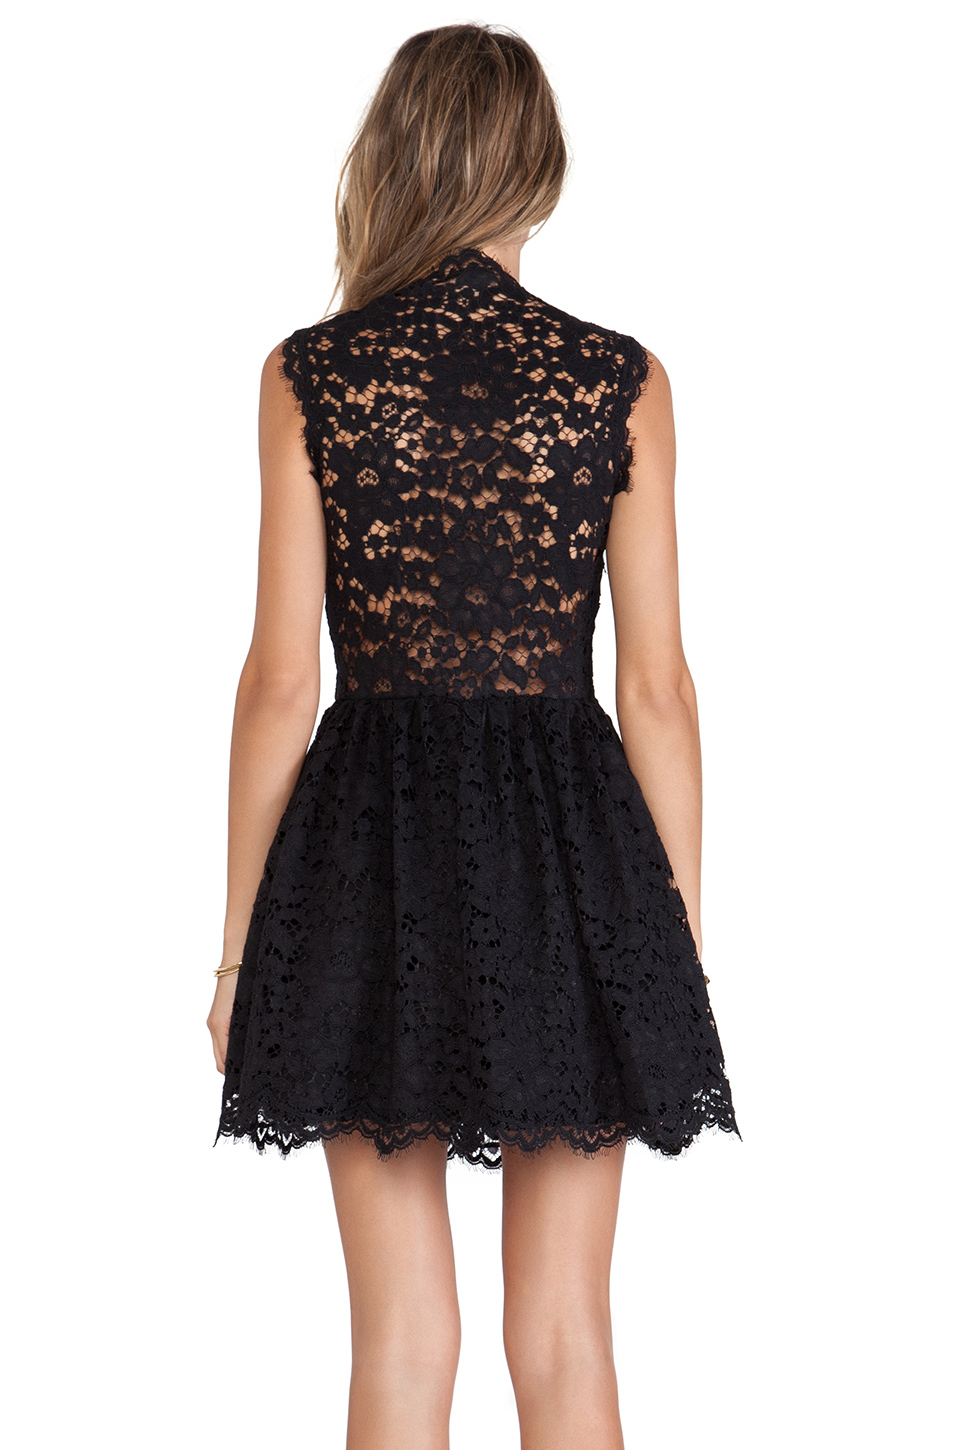 Alexis antilles scalloped detail lace dress in black lace from revolveclothing.com